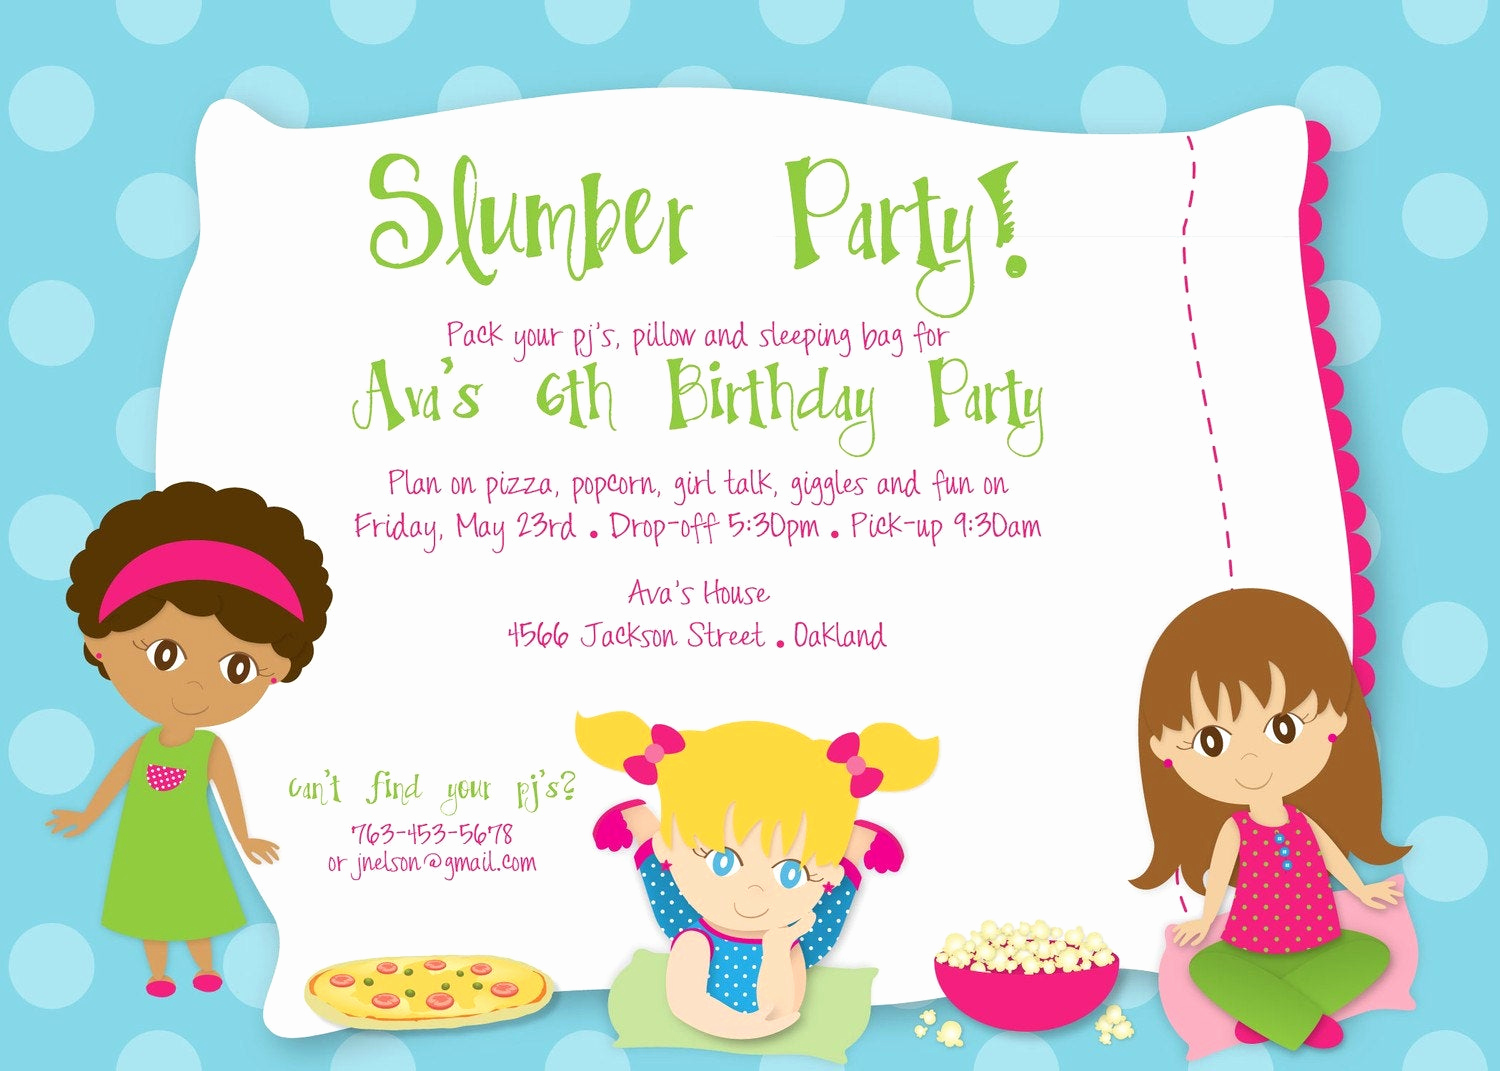 Pajama Party Invitation Wording Inspirational Slumber Party Birthday Custom Digital by Kimnelsoncreative